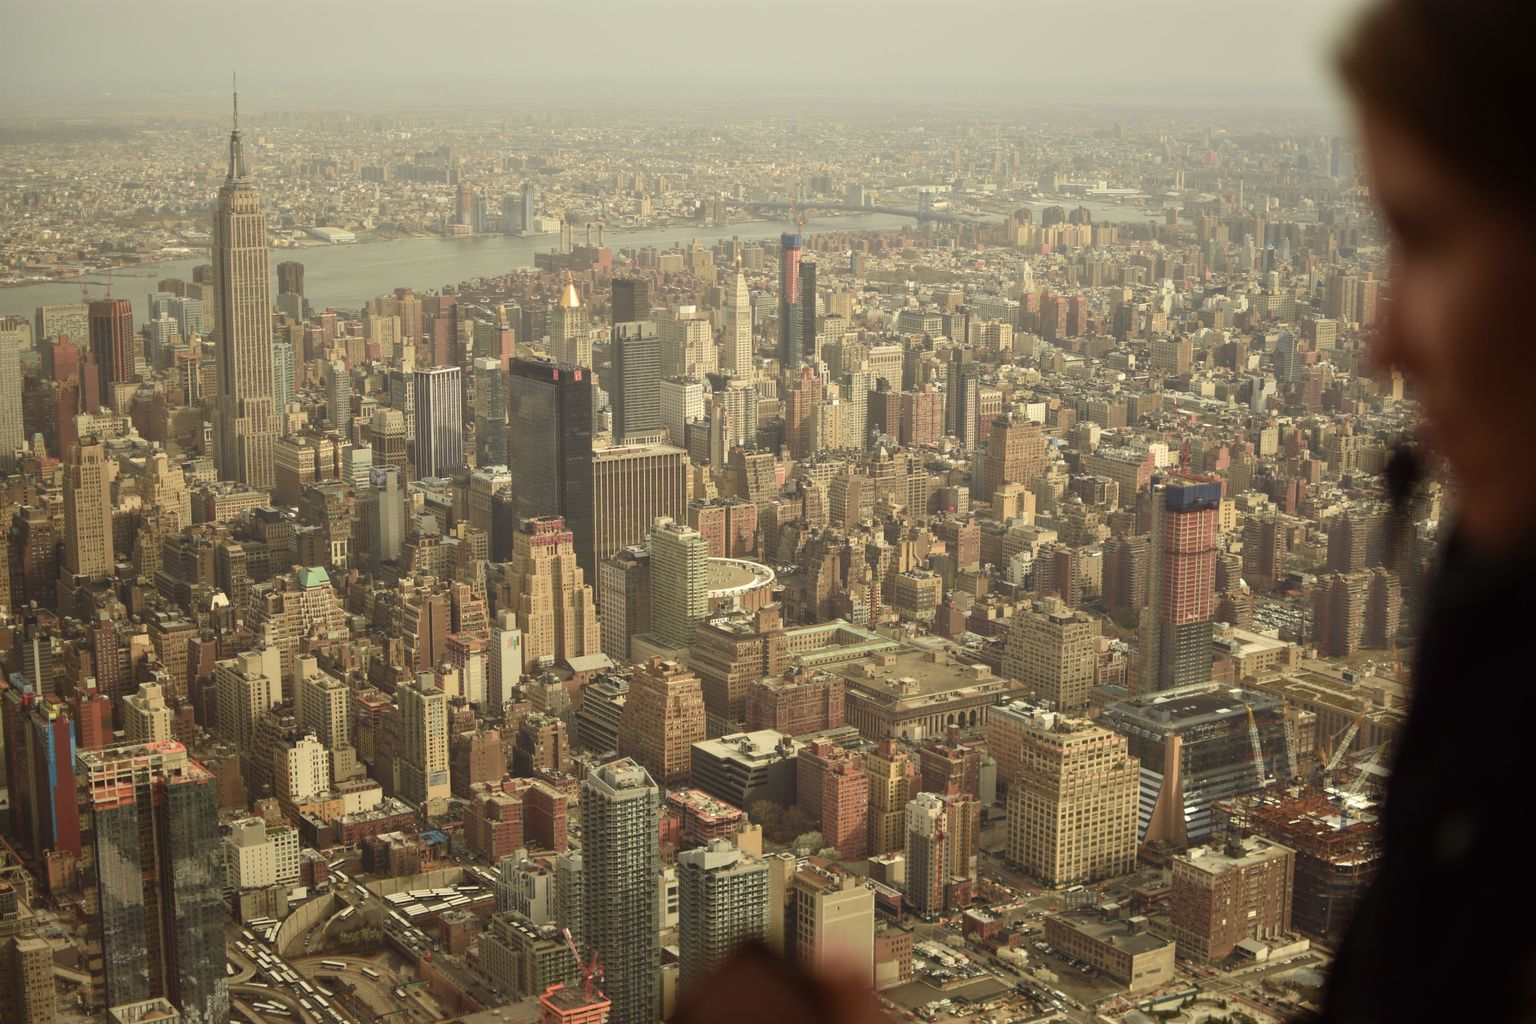 MORE PHOTOS, Helicopter flight through Manhattan, New York